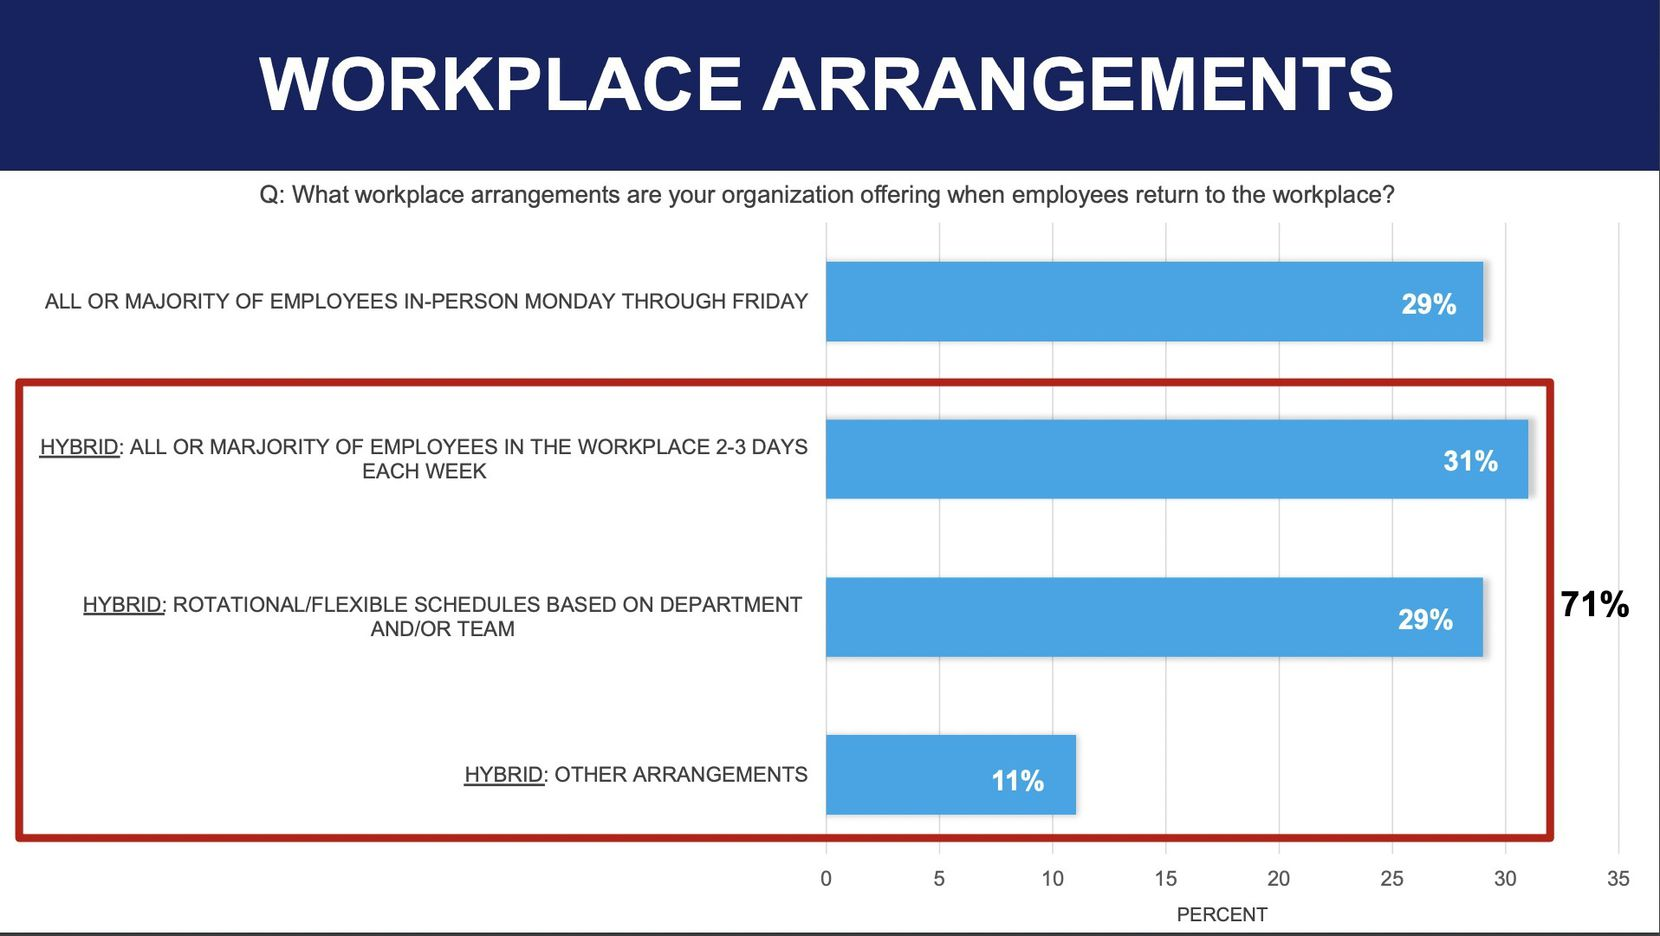 Hybrid work arrangements are favored by seven out of 10 companies.